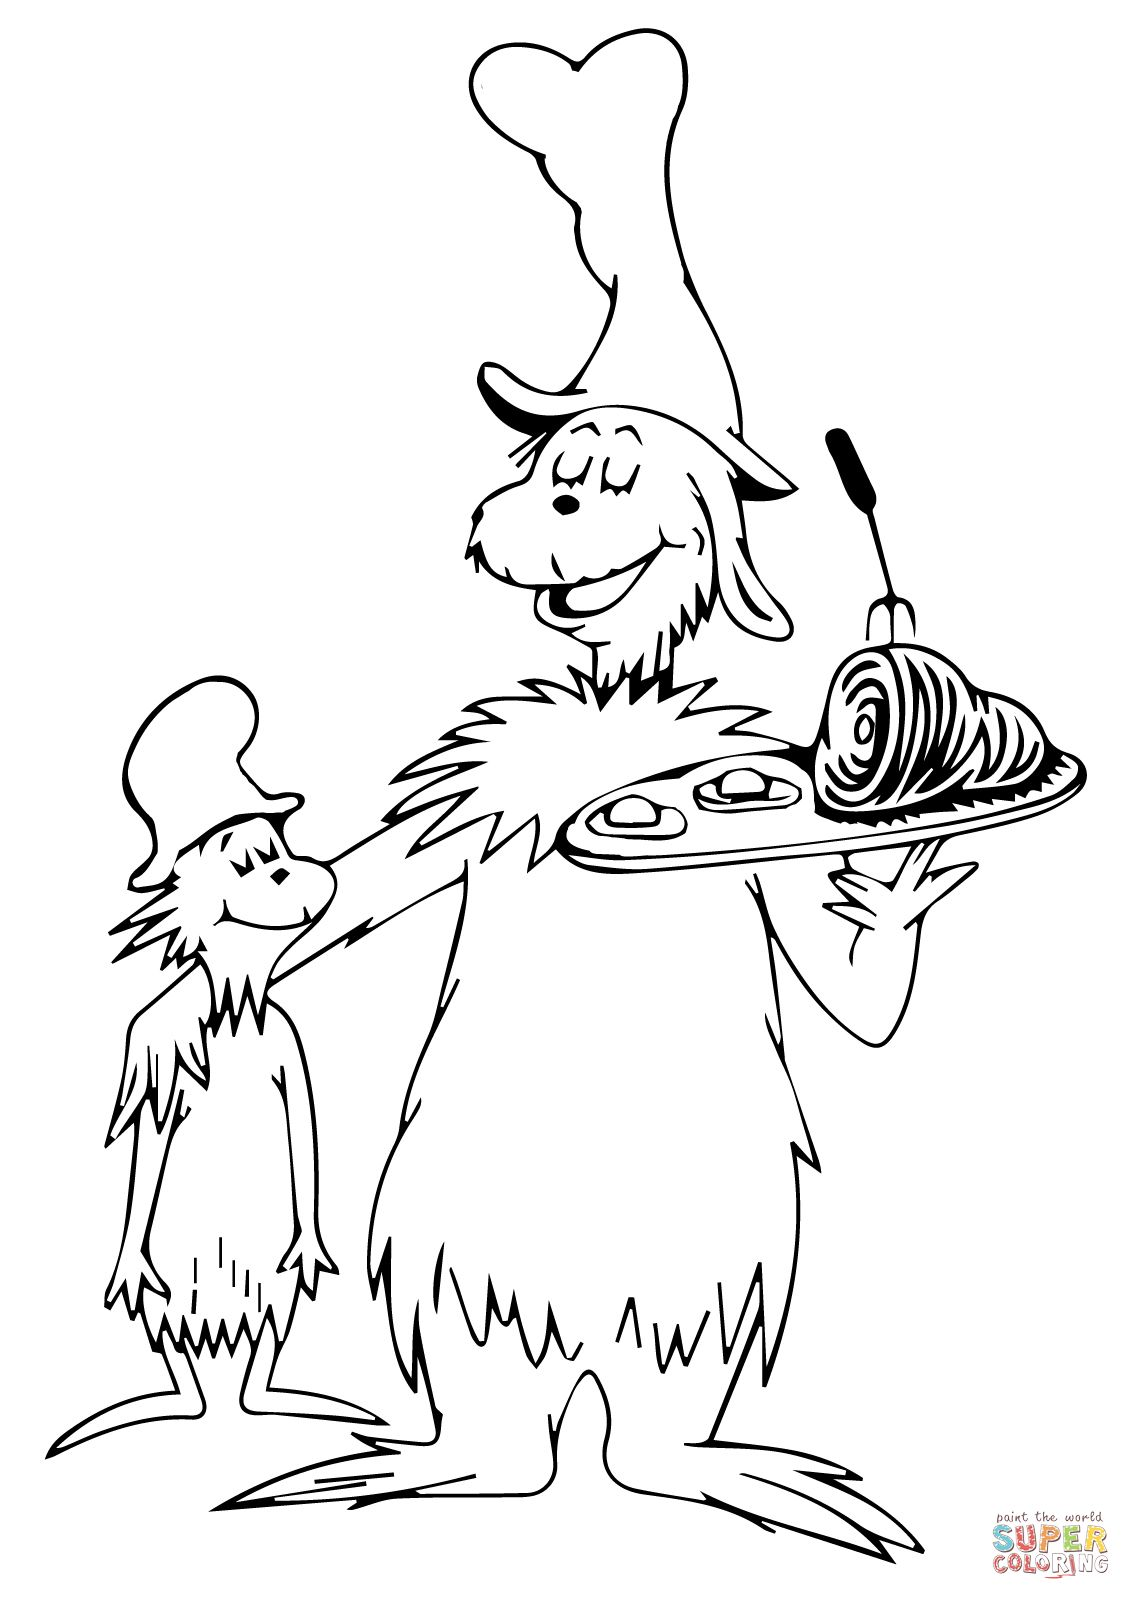 green eggs and ham coloring green eggs and ham coloring page coloring home ham coloring and green eggs